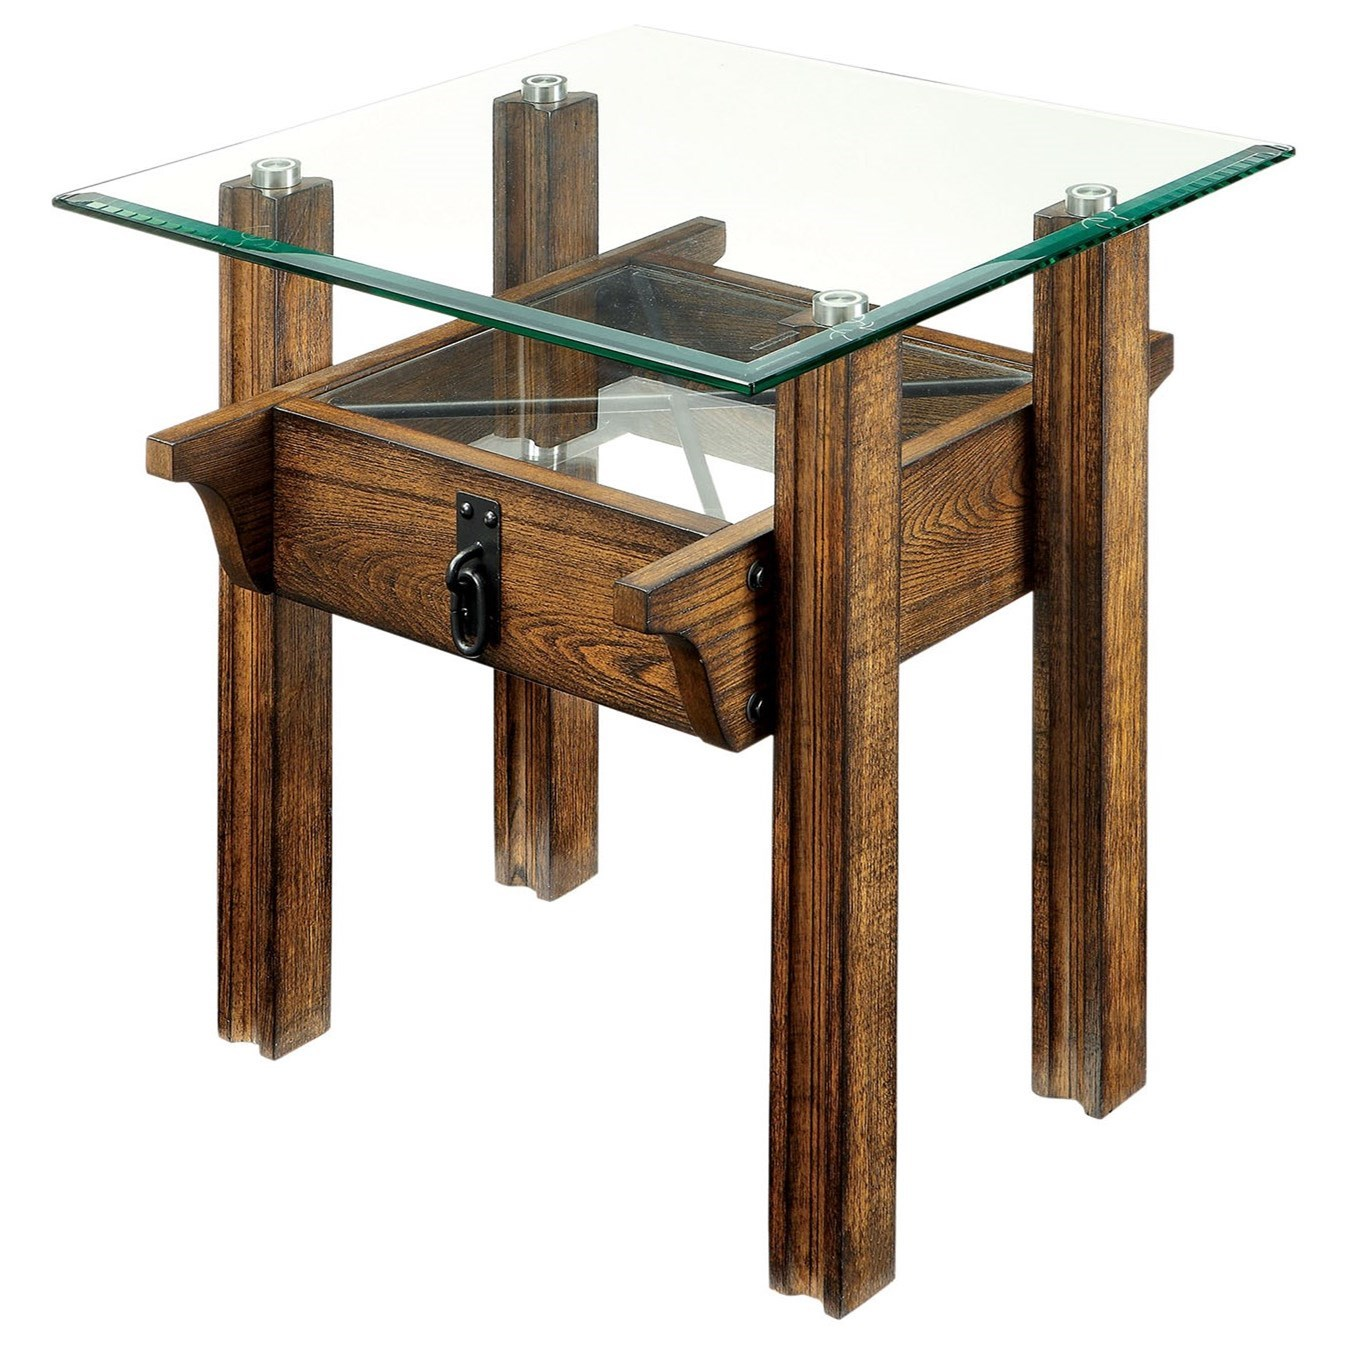 Furniture Of America Penny Rustic Industrial End Table With Glass